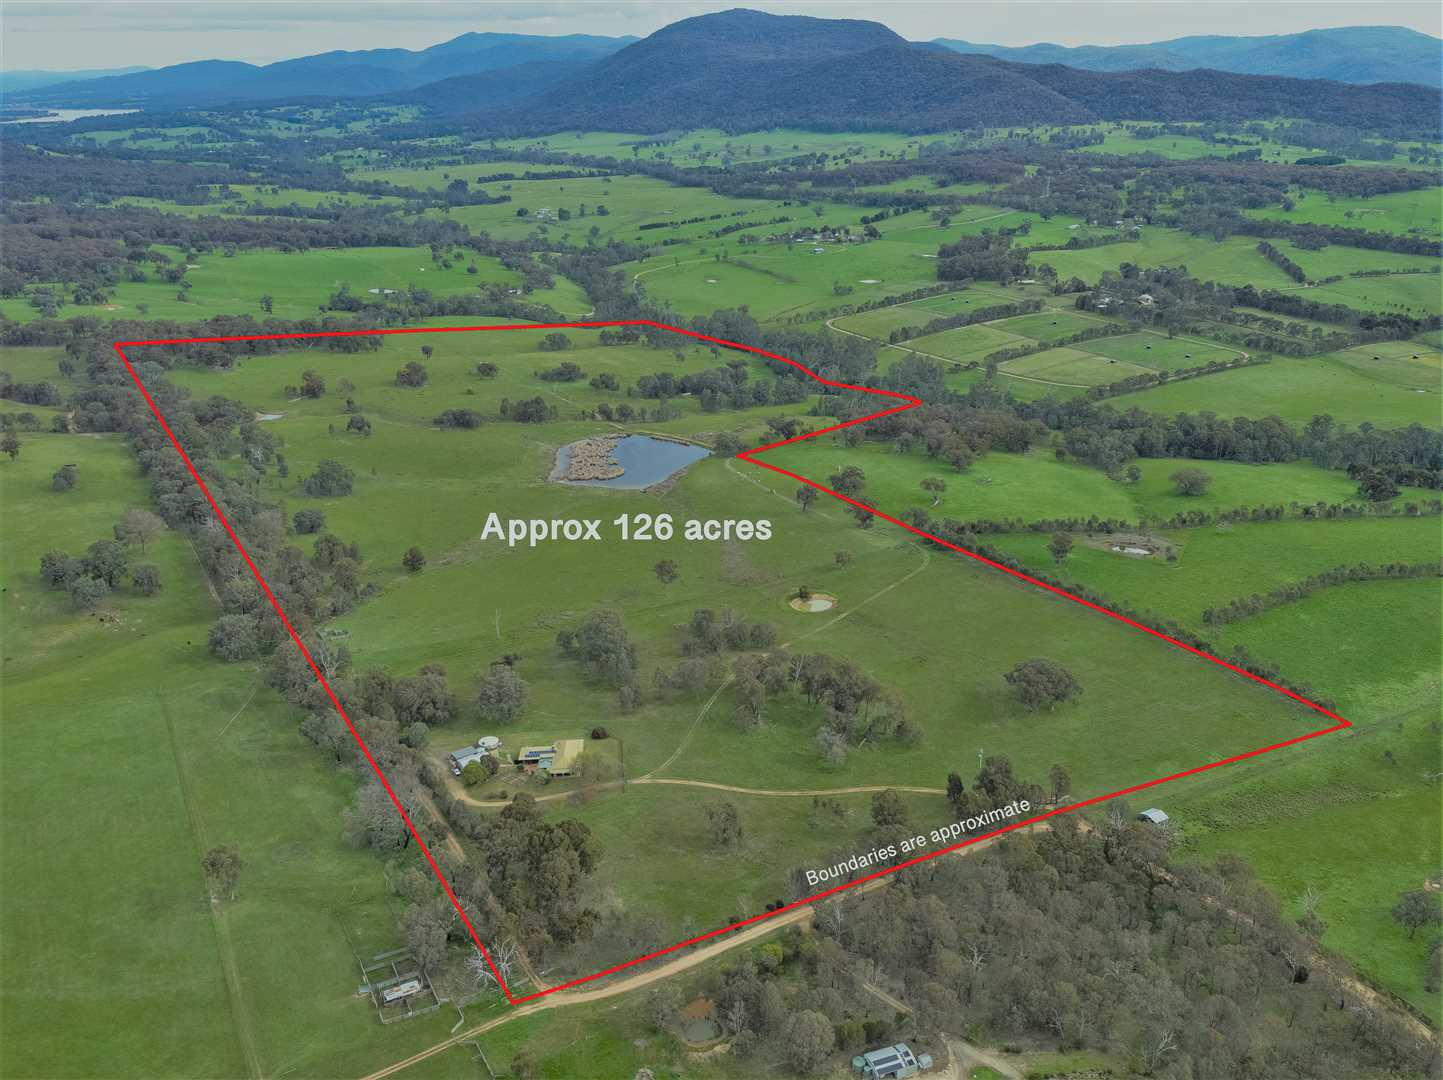 Aerial view with boundaries